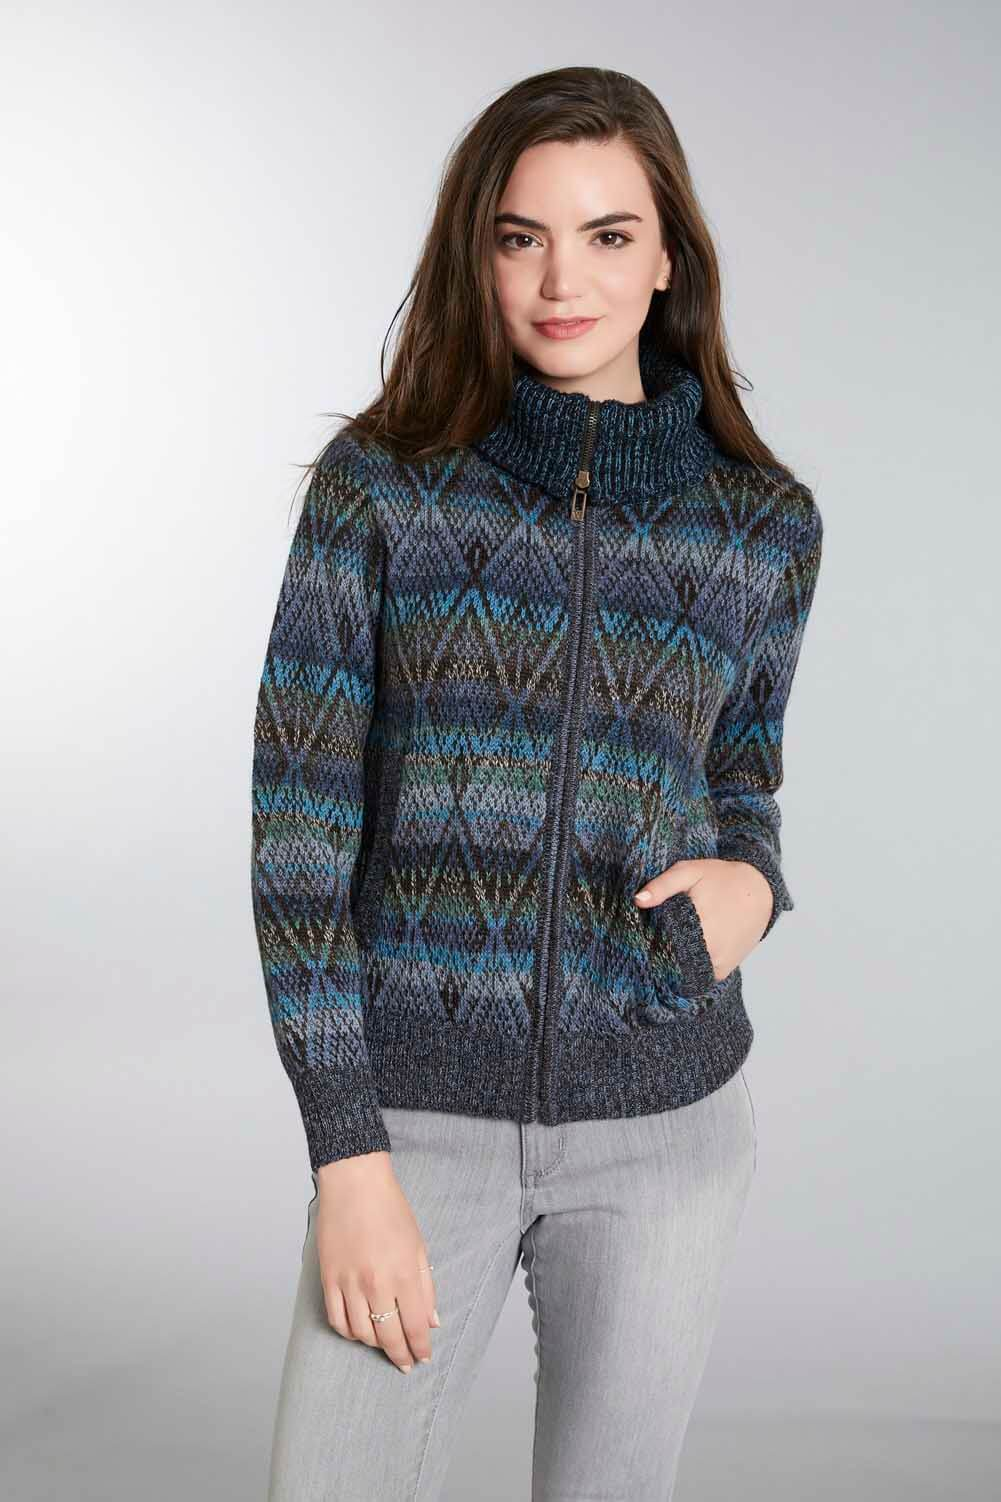 Marina Polo Jacket Women's Alpaca Sweater